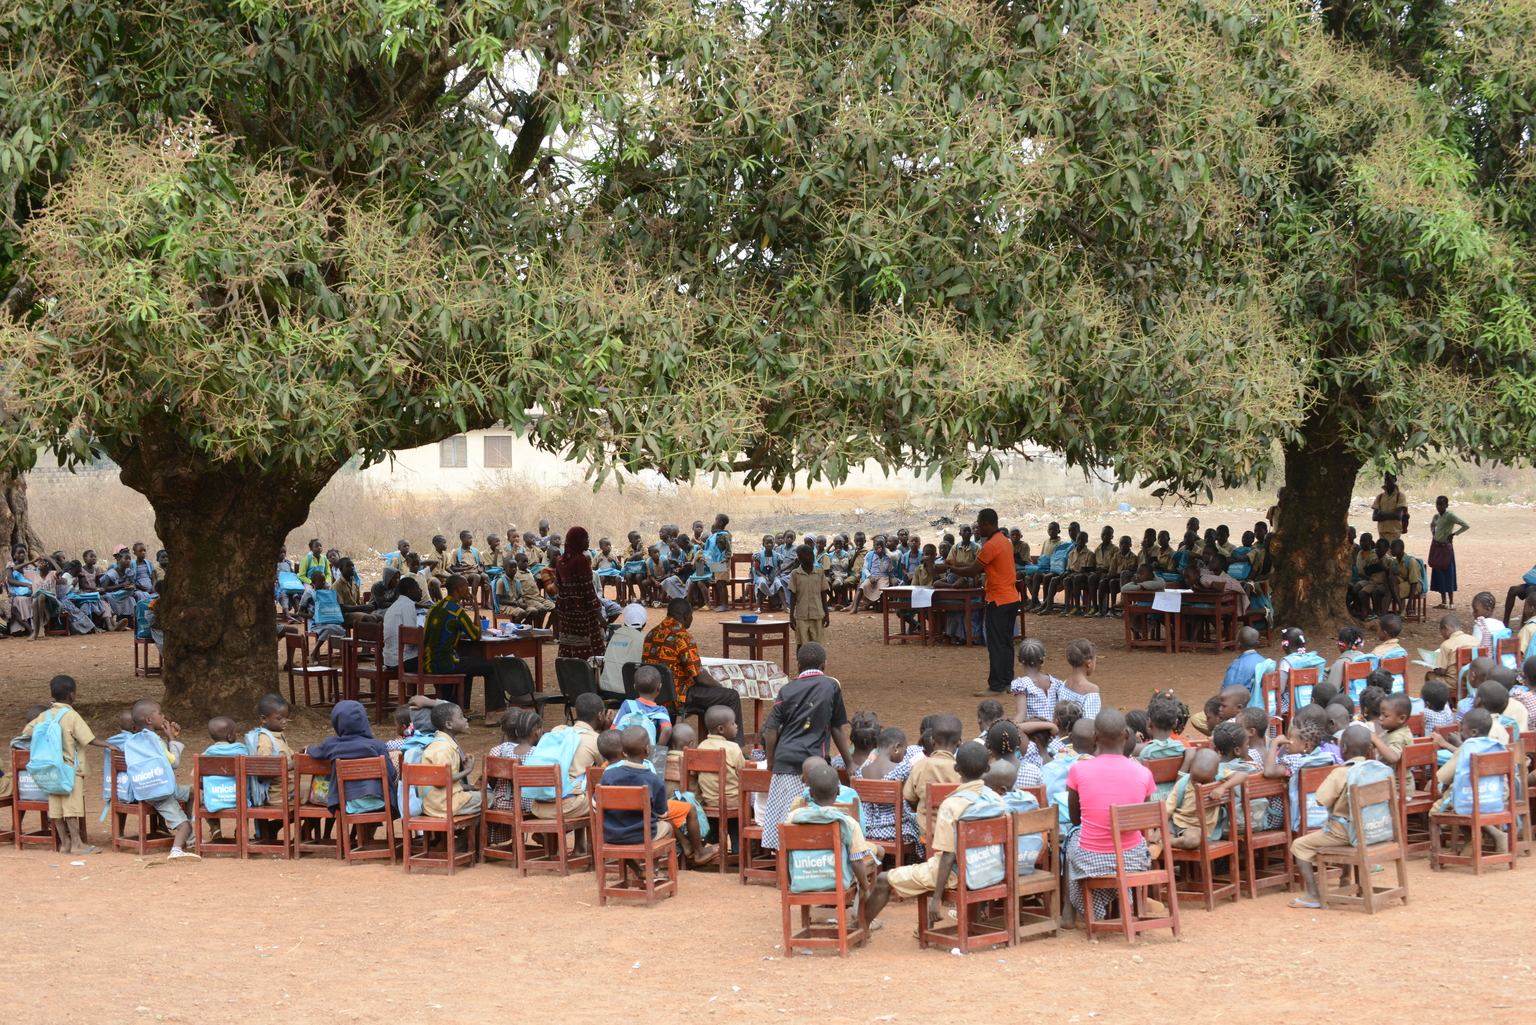 Children gather for a reading club at a primary school in Koro, near Touba, Côte d'Ivoire, Friday 19 February 2016. After years of conflict Côte d'Ivoire is now repositioning itself in Africa with the aim of becoming an emerging economy by 2020. With economic growth estimated at 9 percent, investors are streaming in. Yet nearly 50 percent of the population still lives in poverty. Maternal and child mortality, education, health care and protection of women and children remain key challenges. Significant progress has been made in Côte d'Ivoire since education became compulsory for children aged 6 to 16 in 2015 - the enrolment rate rose from 79% in 2015 to 88% in 2016. However, the number of children out of school remains high, especially in the northern and the western regions of the country. UNICEF is supporting the development of the Education Sector Plan (2016–2026) and also helping the Ministry of Education and partners to identify and address the reasons why children are not in school. One of the challenges Côte d'Ivoire still has to address is gender disparity. When faced with the choice, parents routinely choose to send boys to school before girls, a gap which widens significantly at secondary school level. Girls are also more likely to drop out of school because of early pregnancy and marriage, to care for younger siblings or to undertake other household chores.